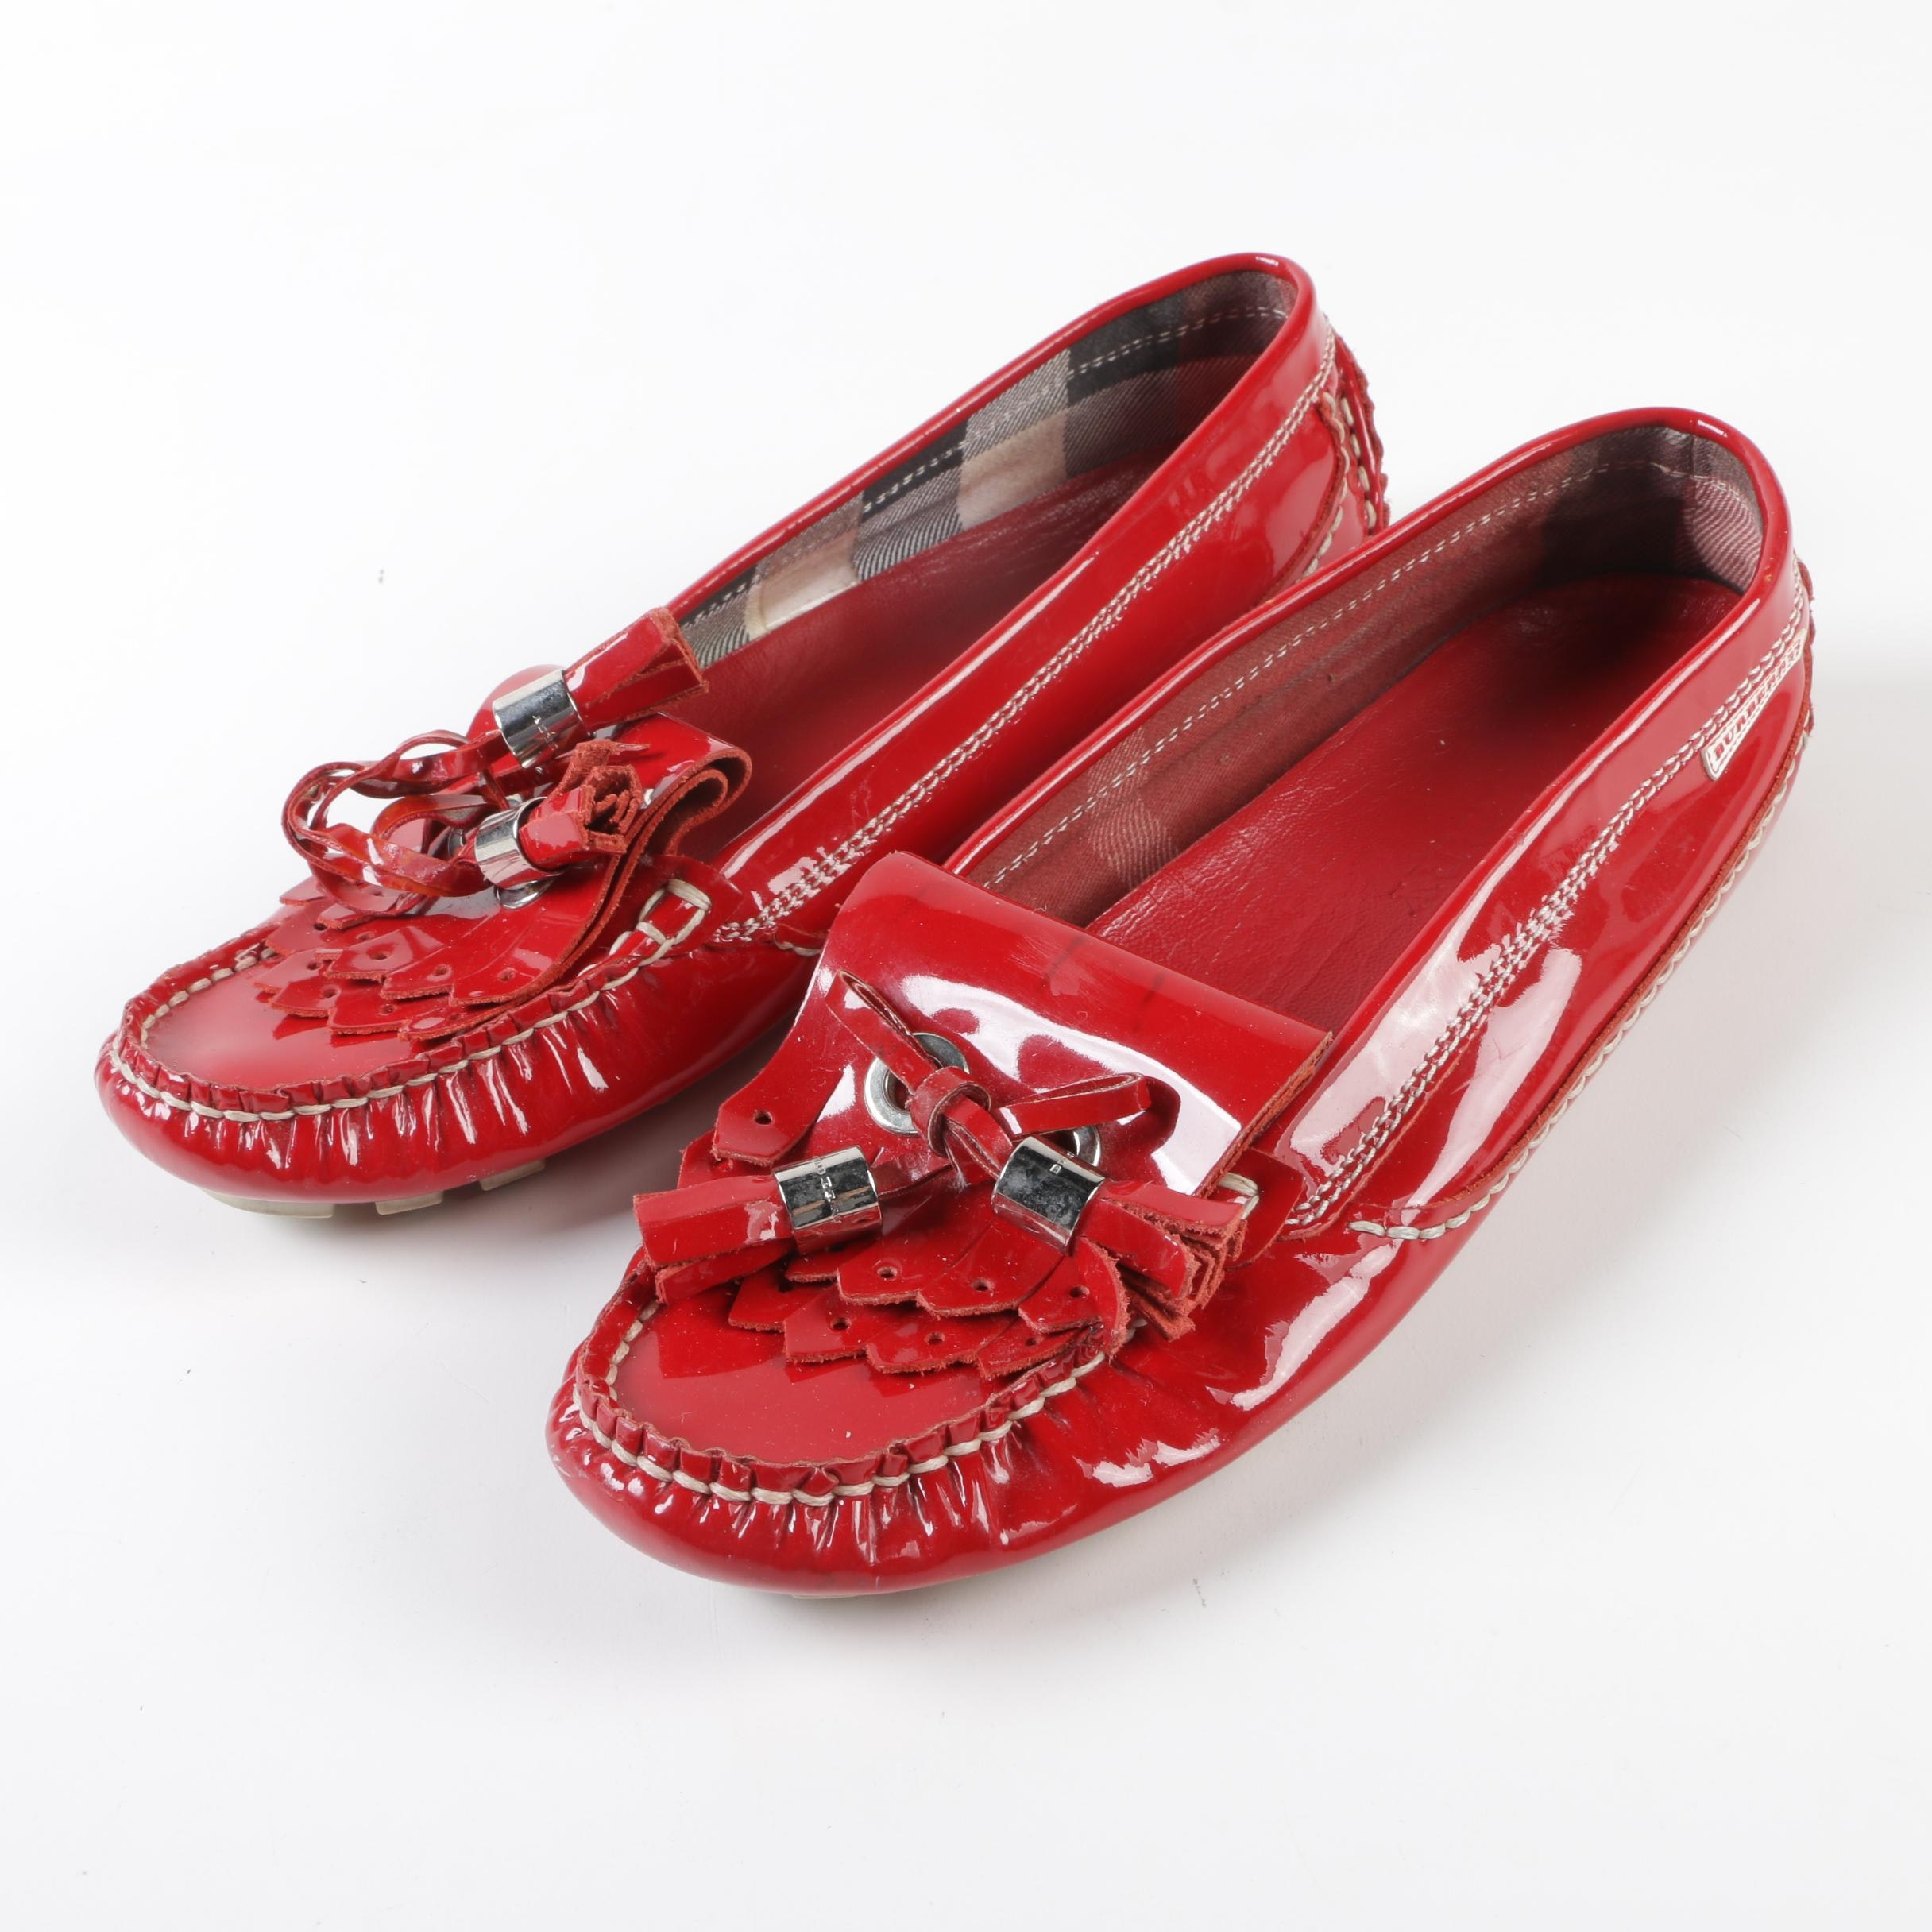 Burberry Red Patent Leather Tassel Driving Shoes